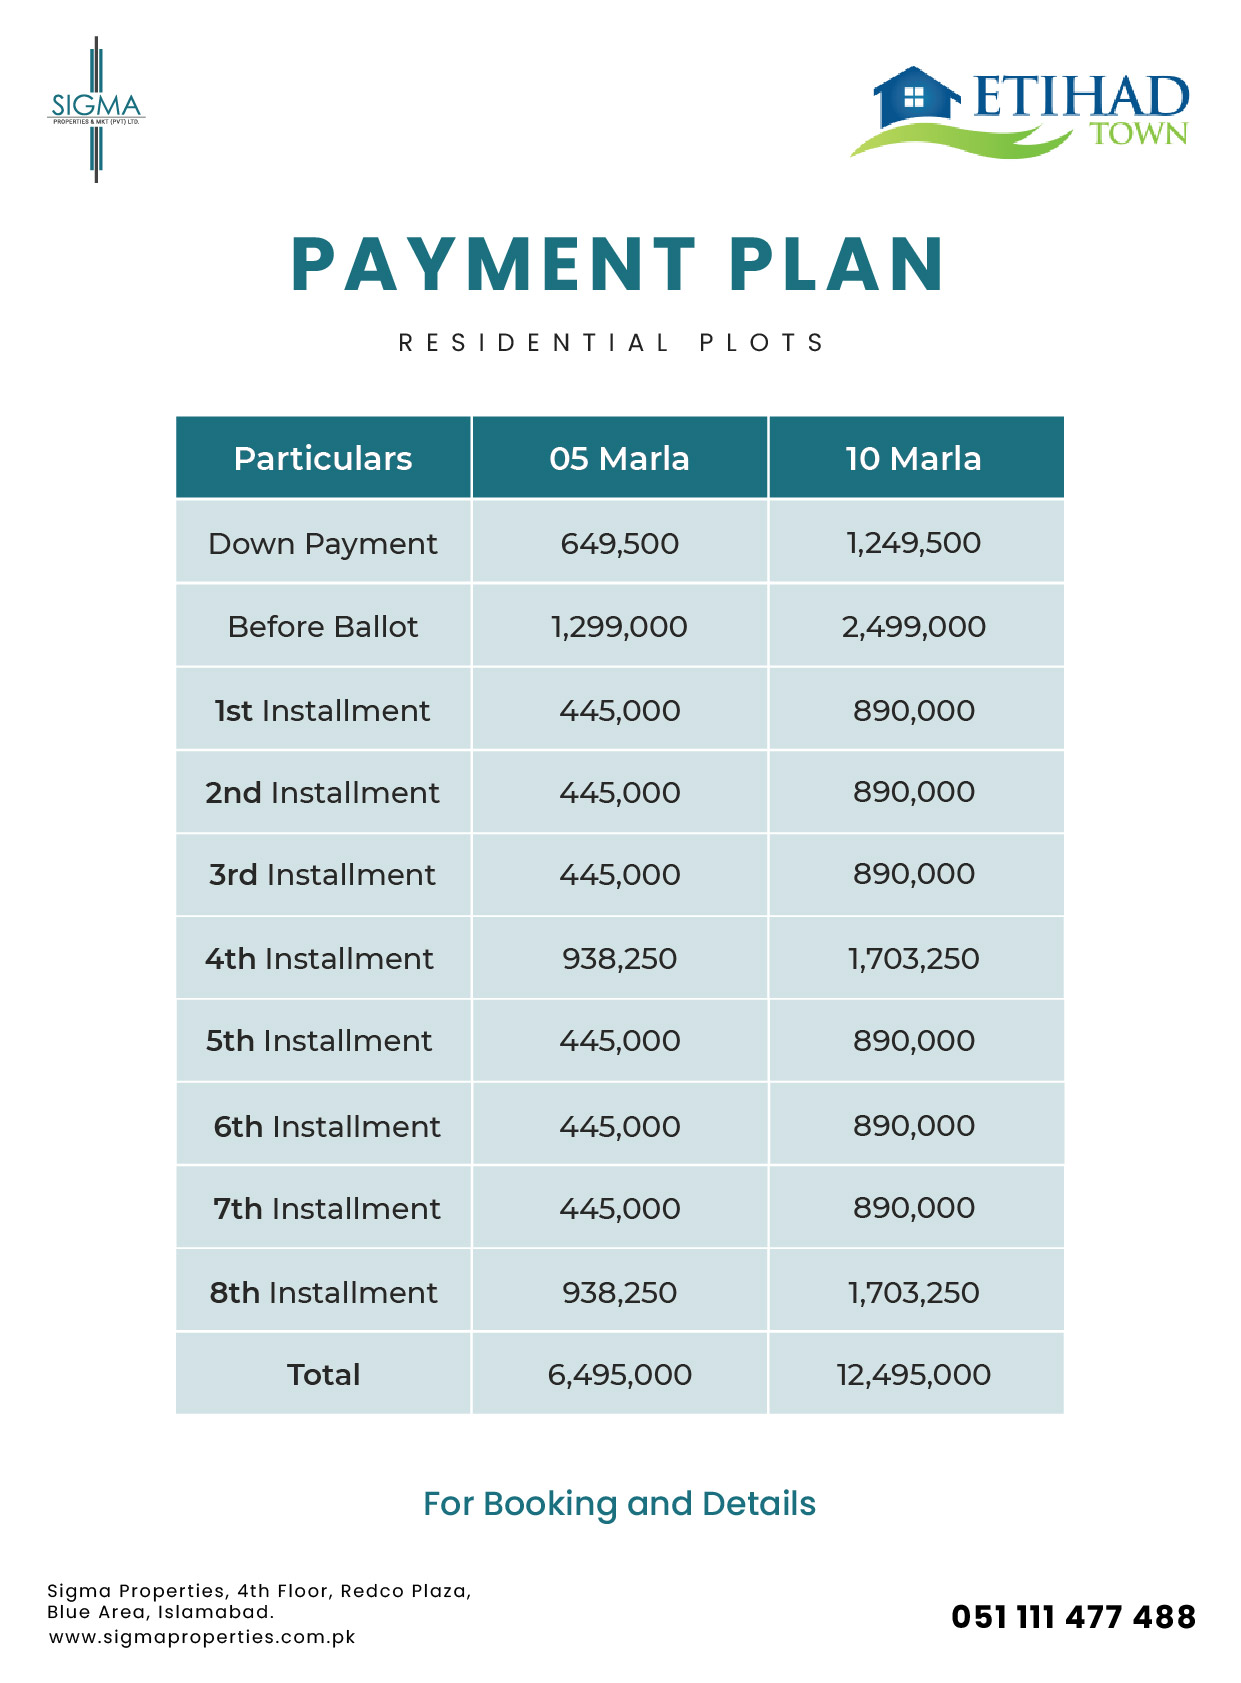 Etihad Town residential plot payment plans